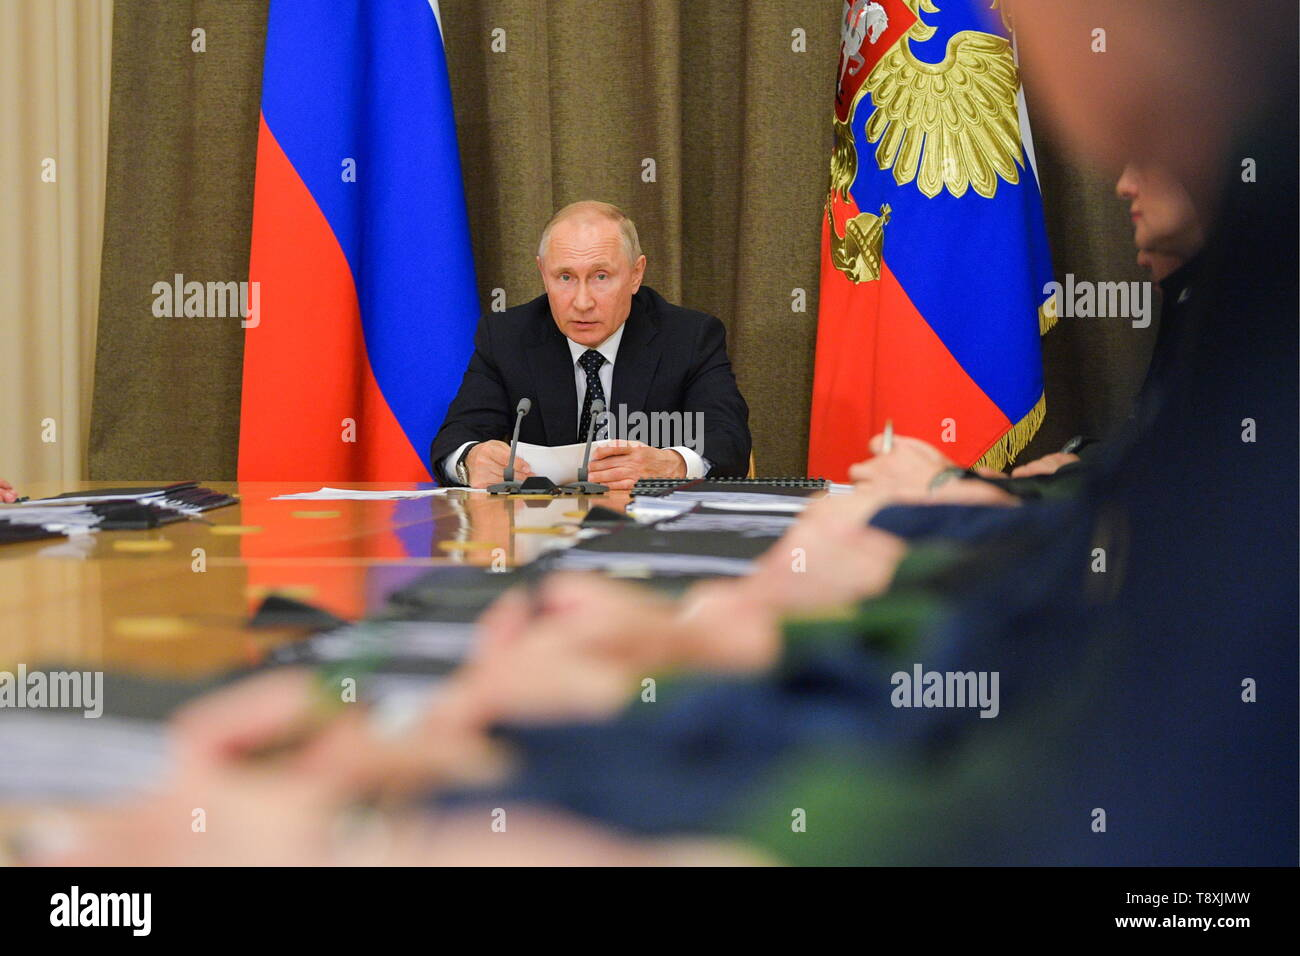 Sochi, Russia. 15th May, 2019. SOCHI, RUSSIA - MAY 15, 2019: Russia's President Vladimir Putin holds a meeting at Bocharov Ruchei residence to discuss military aviation issues. Alexei Druzhinin/Russian Presidential Press and Information Office/TASS Credit: ITAR-TASS News Agency/Alamy Live News - Stock Image